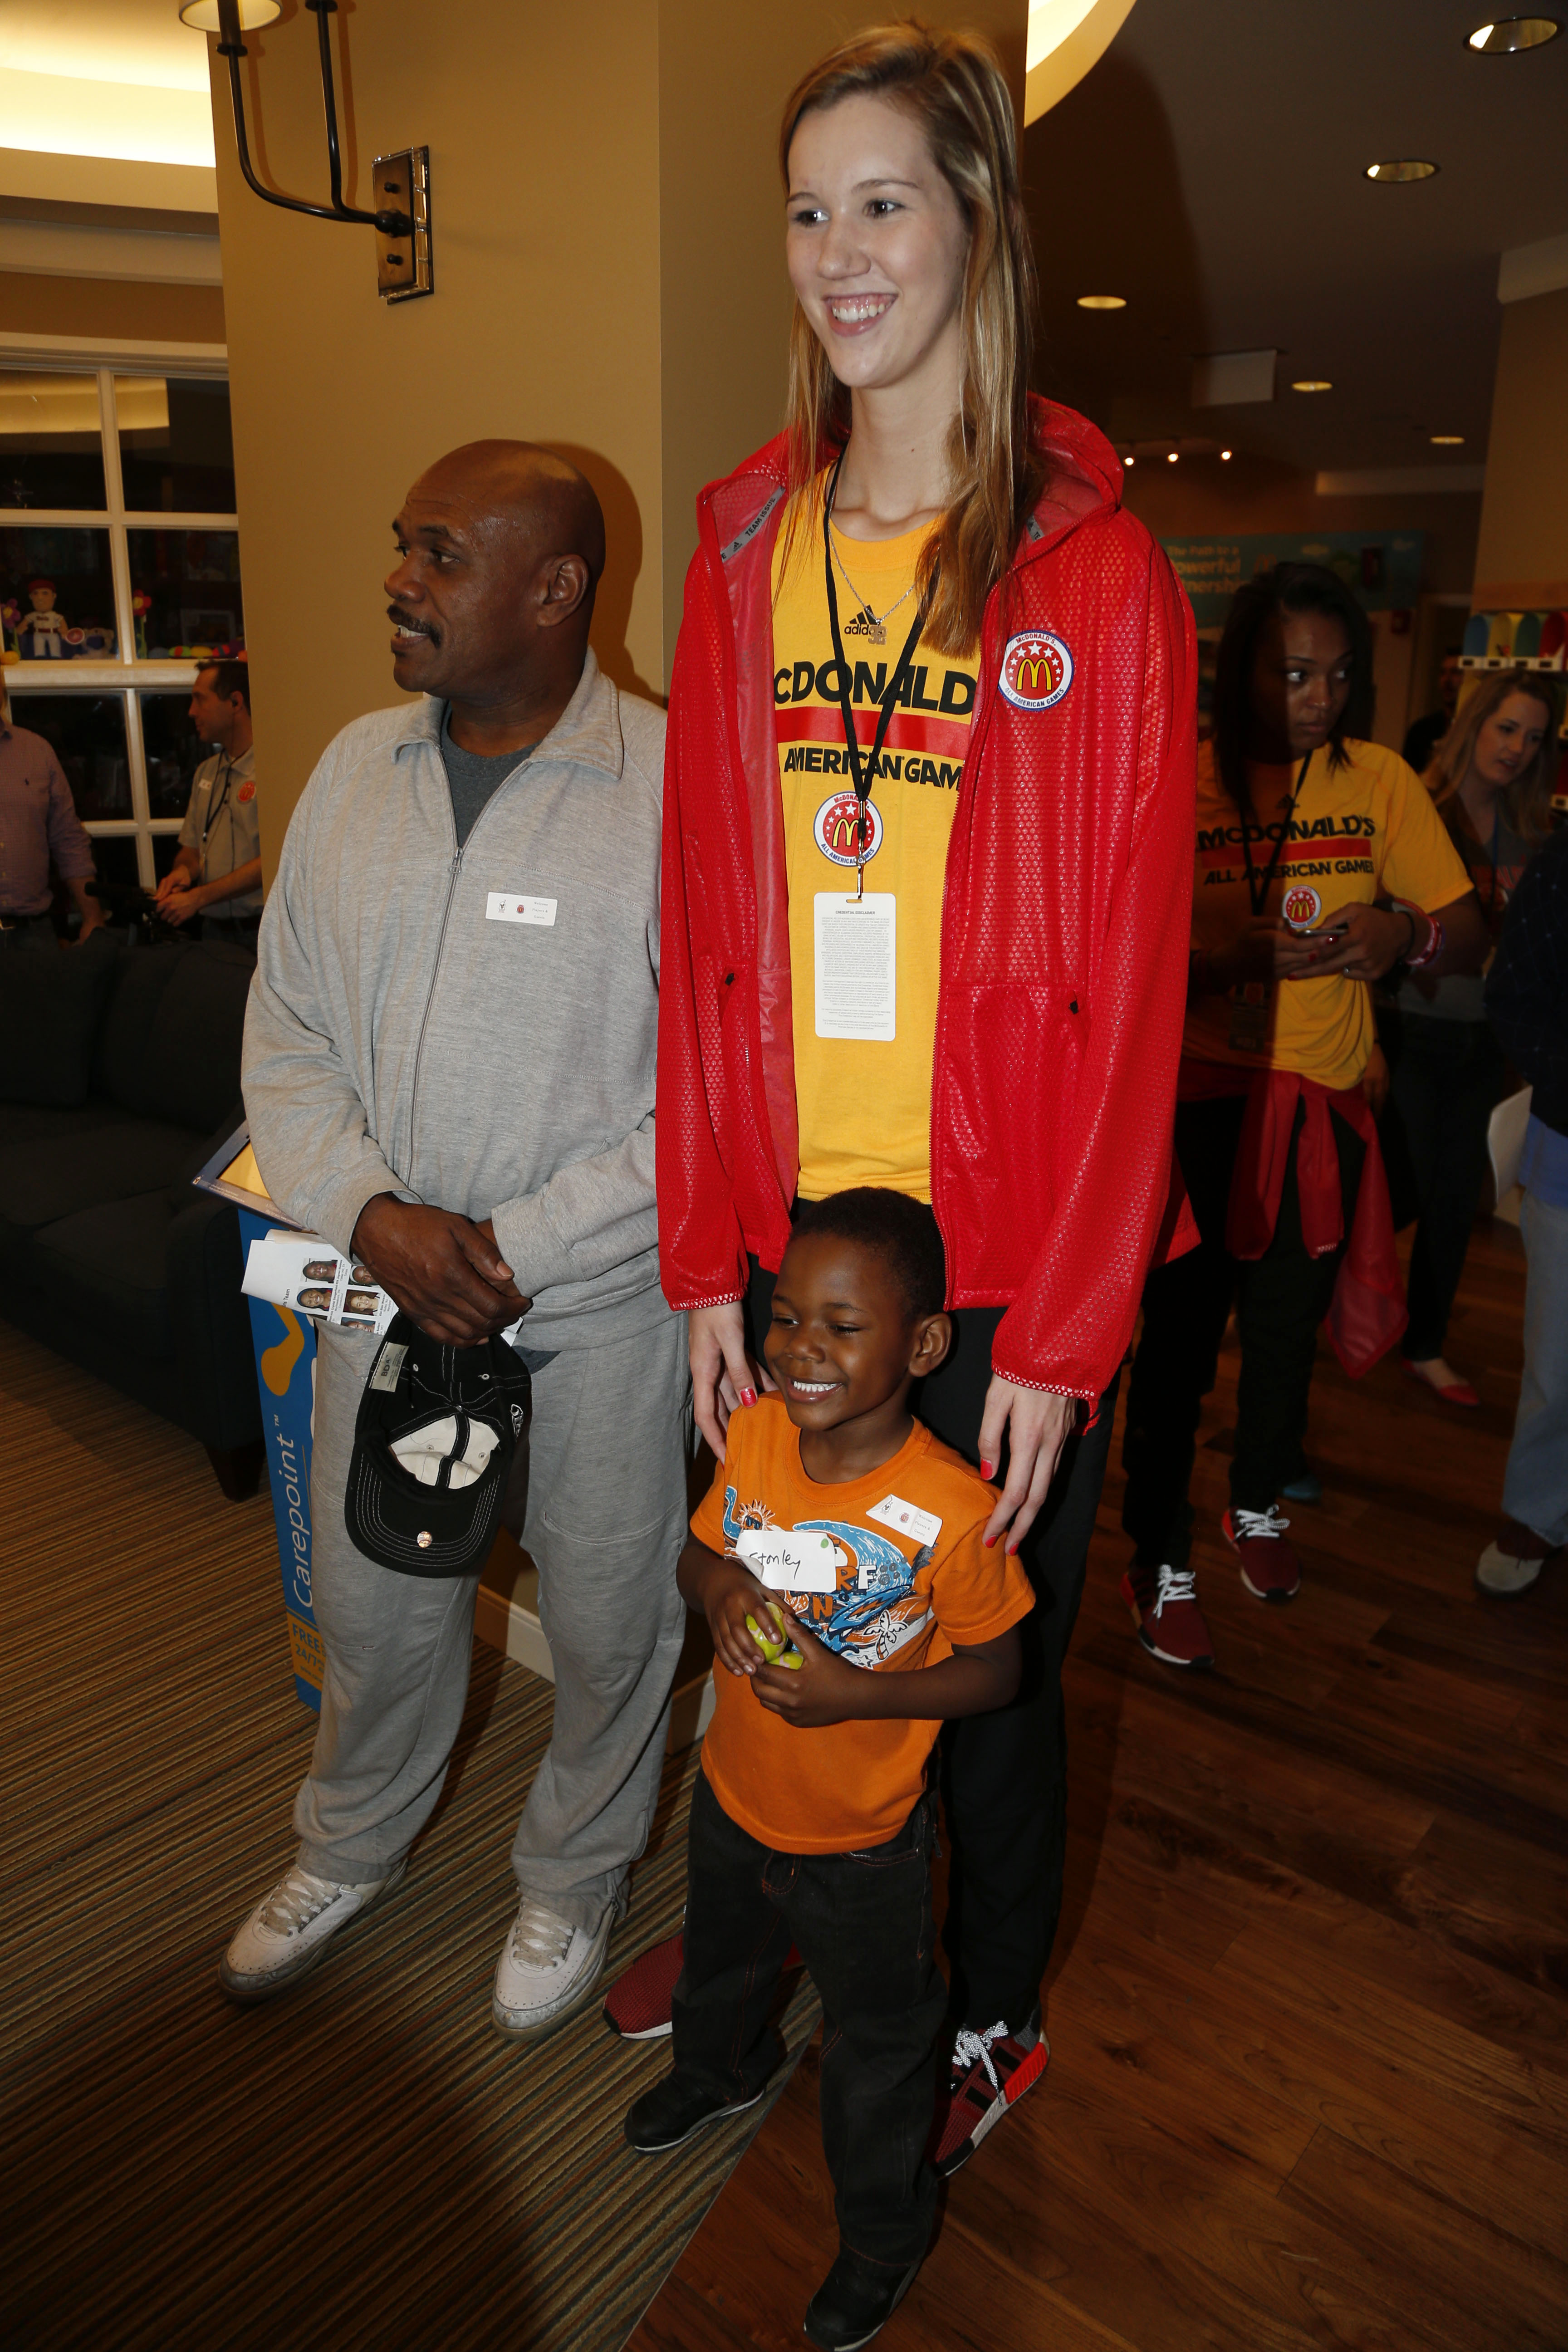 Center Nancy Mulkey poses for a photo with Stanley Parchman after going on an Easter egg hunt at the Ronald McDonald House in downtown Chicago. (Photo: Brian Spurlock, USA TODAY Sports)